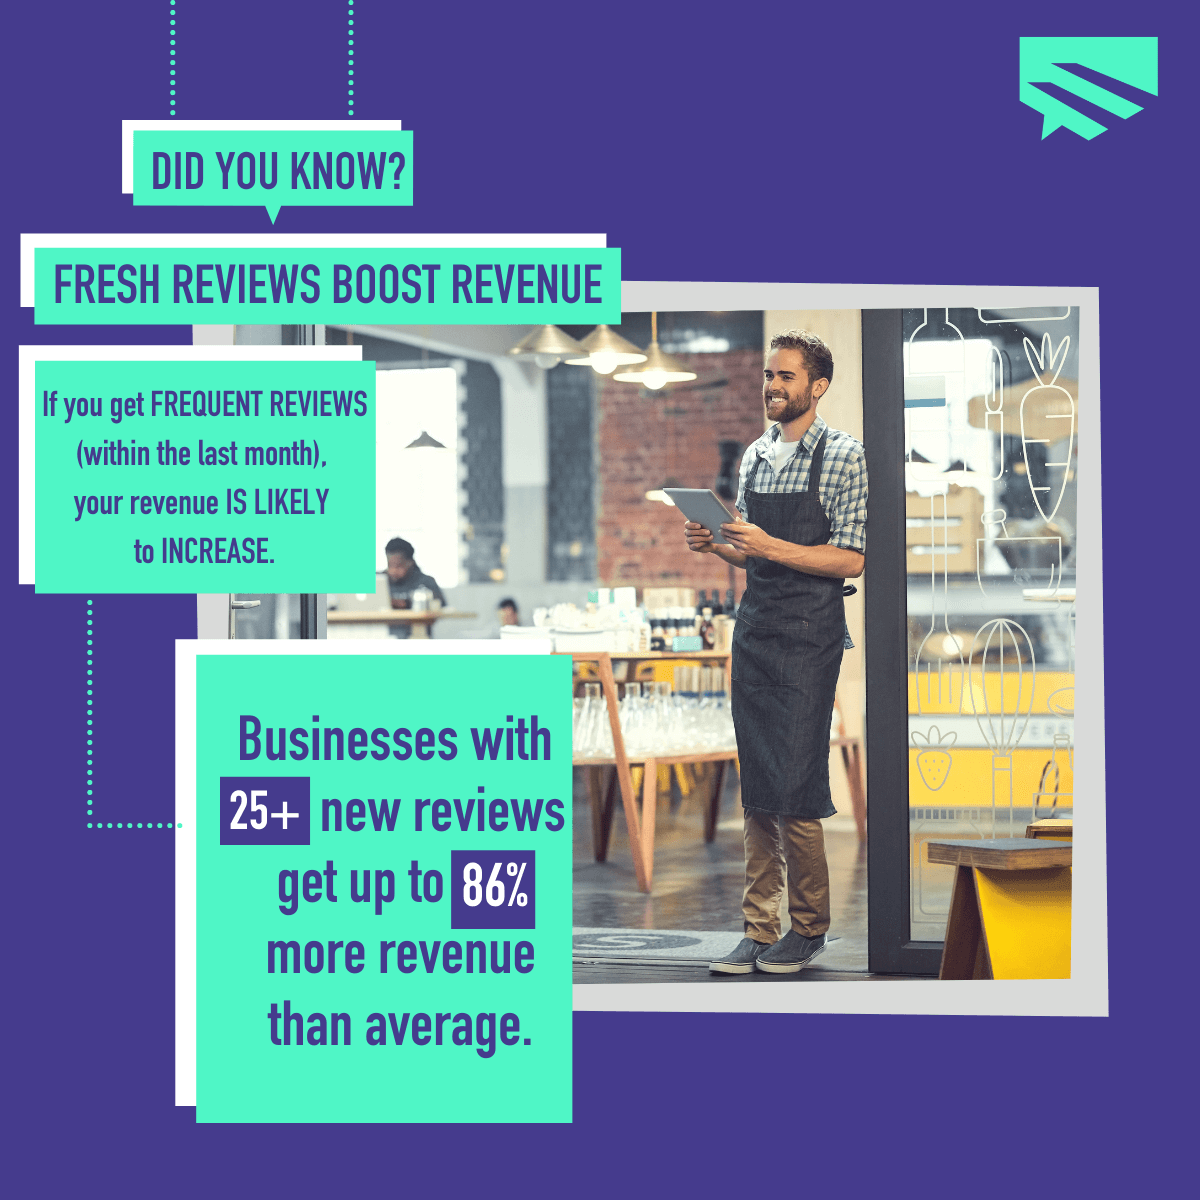 graphic of fresh reviews boost revenue